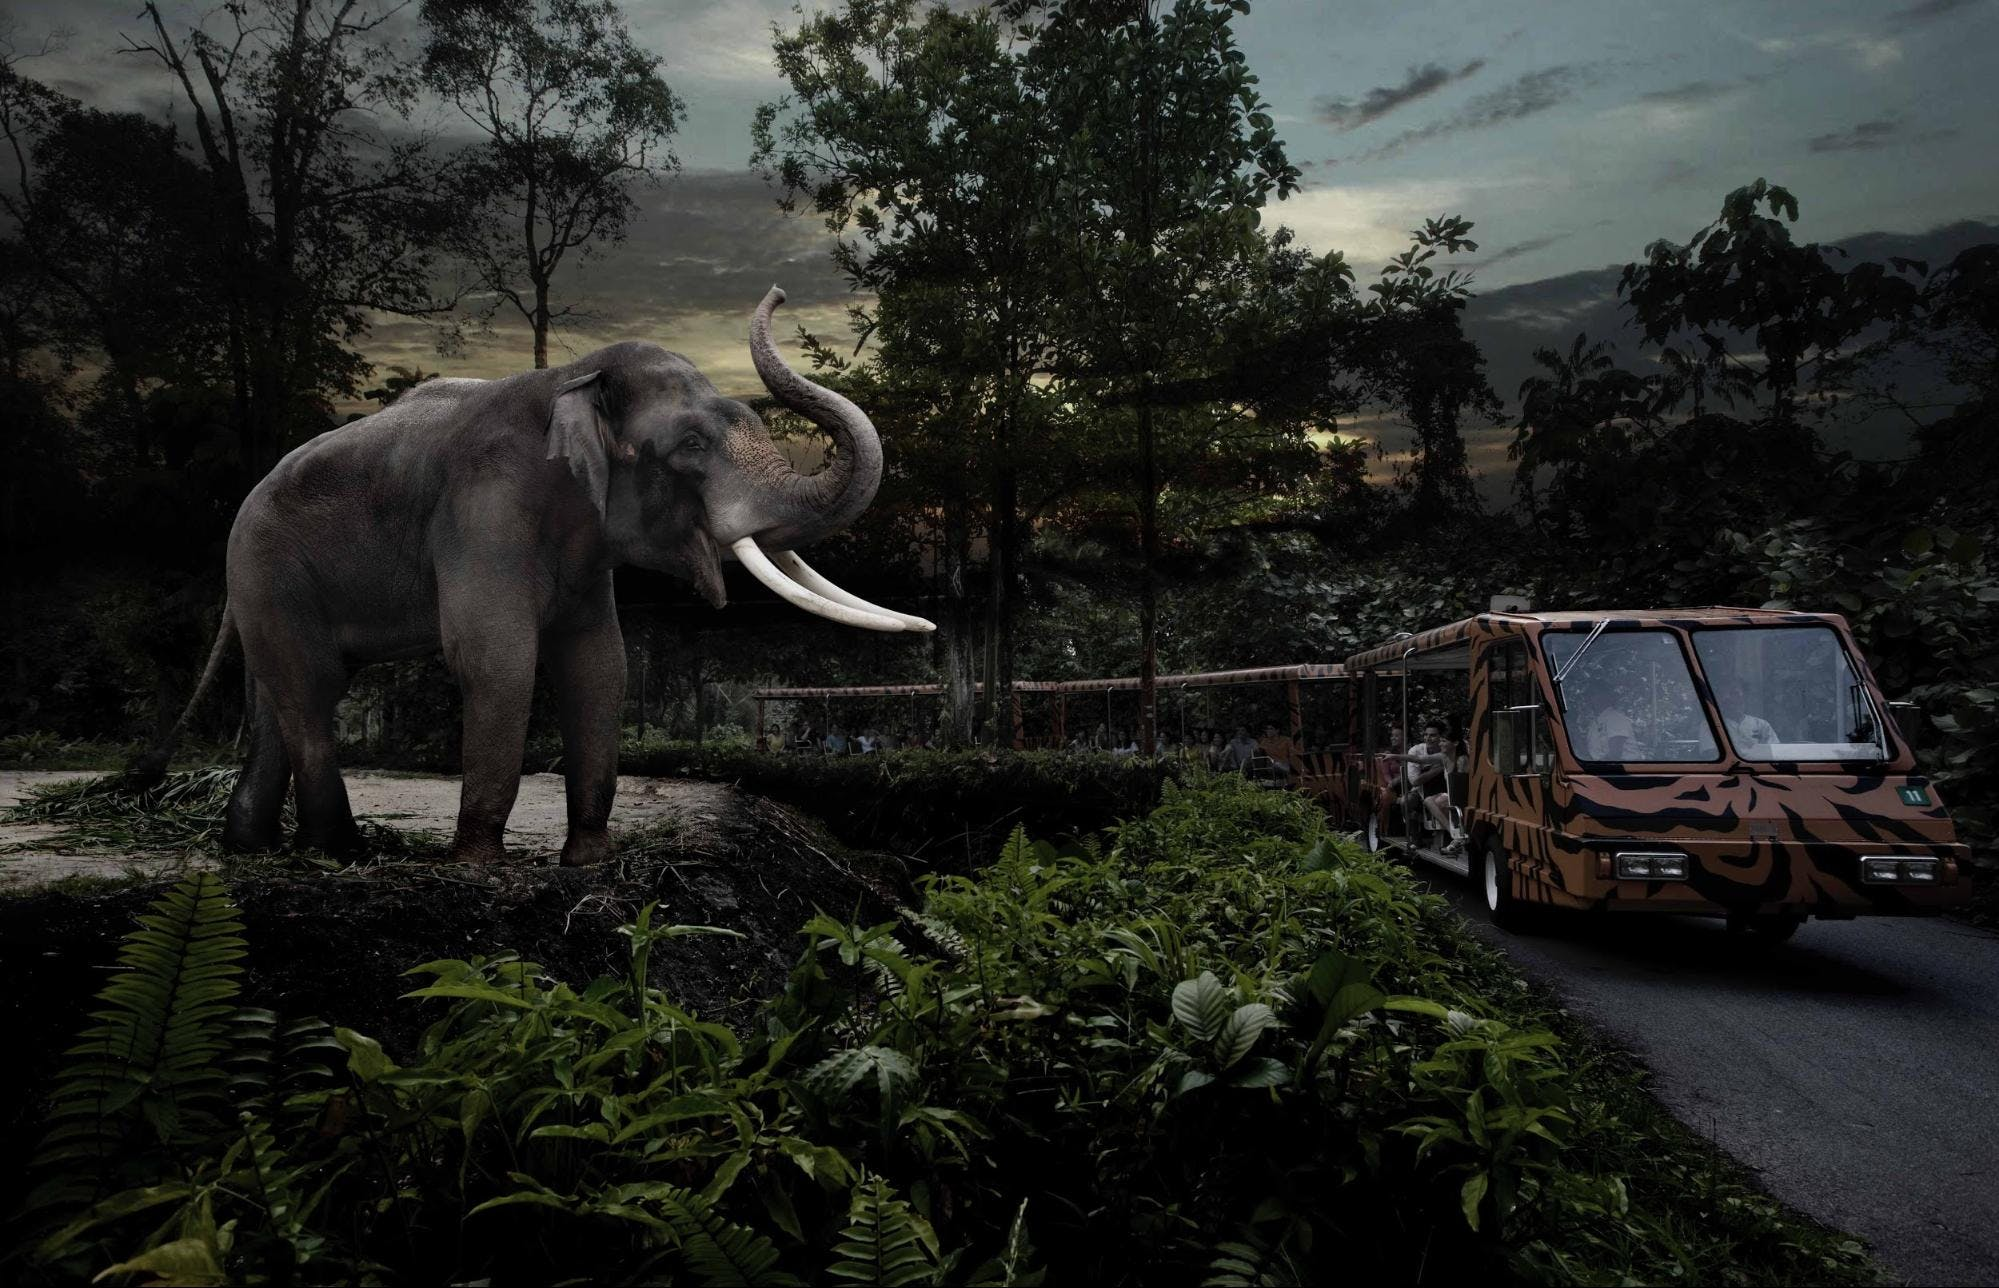 Best Things to do in Best Things to do in Singapore - Singapore Night Safari  - 3